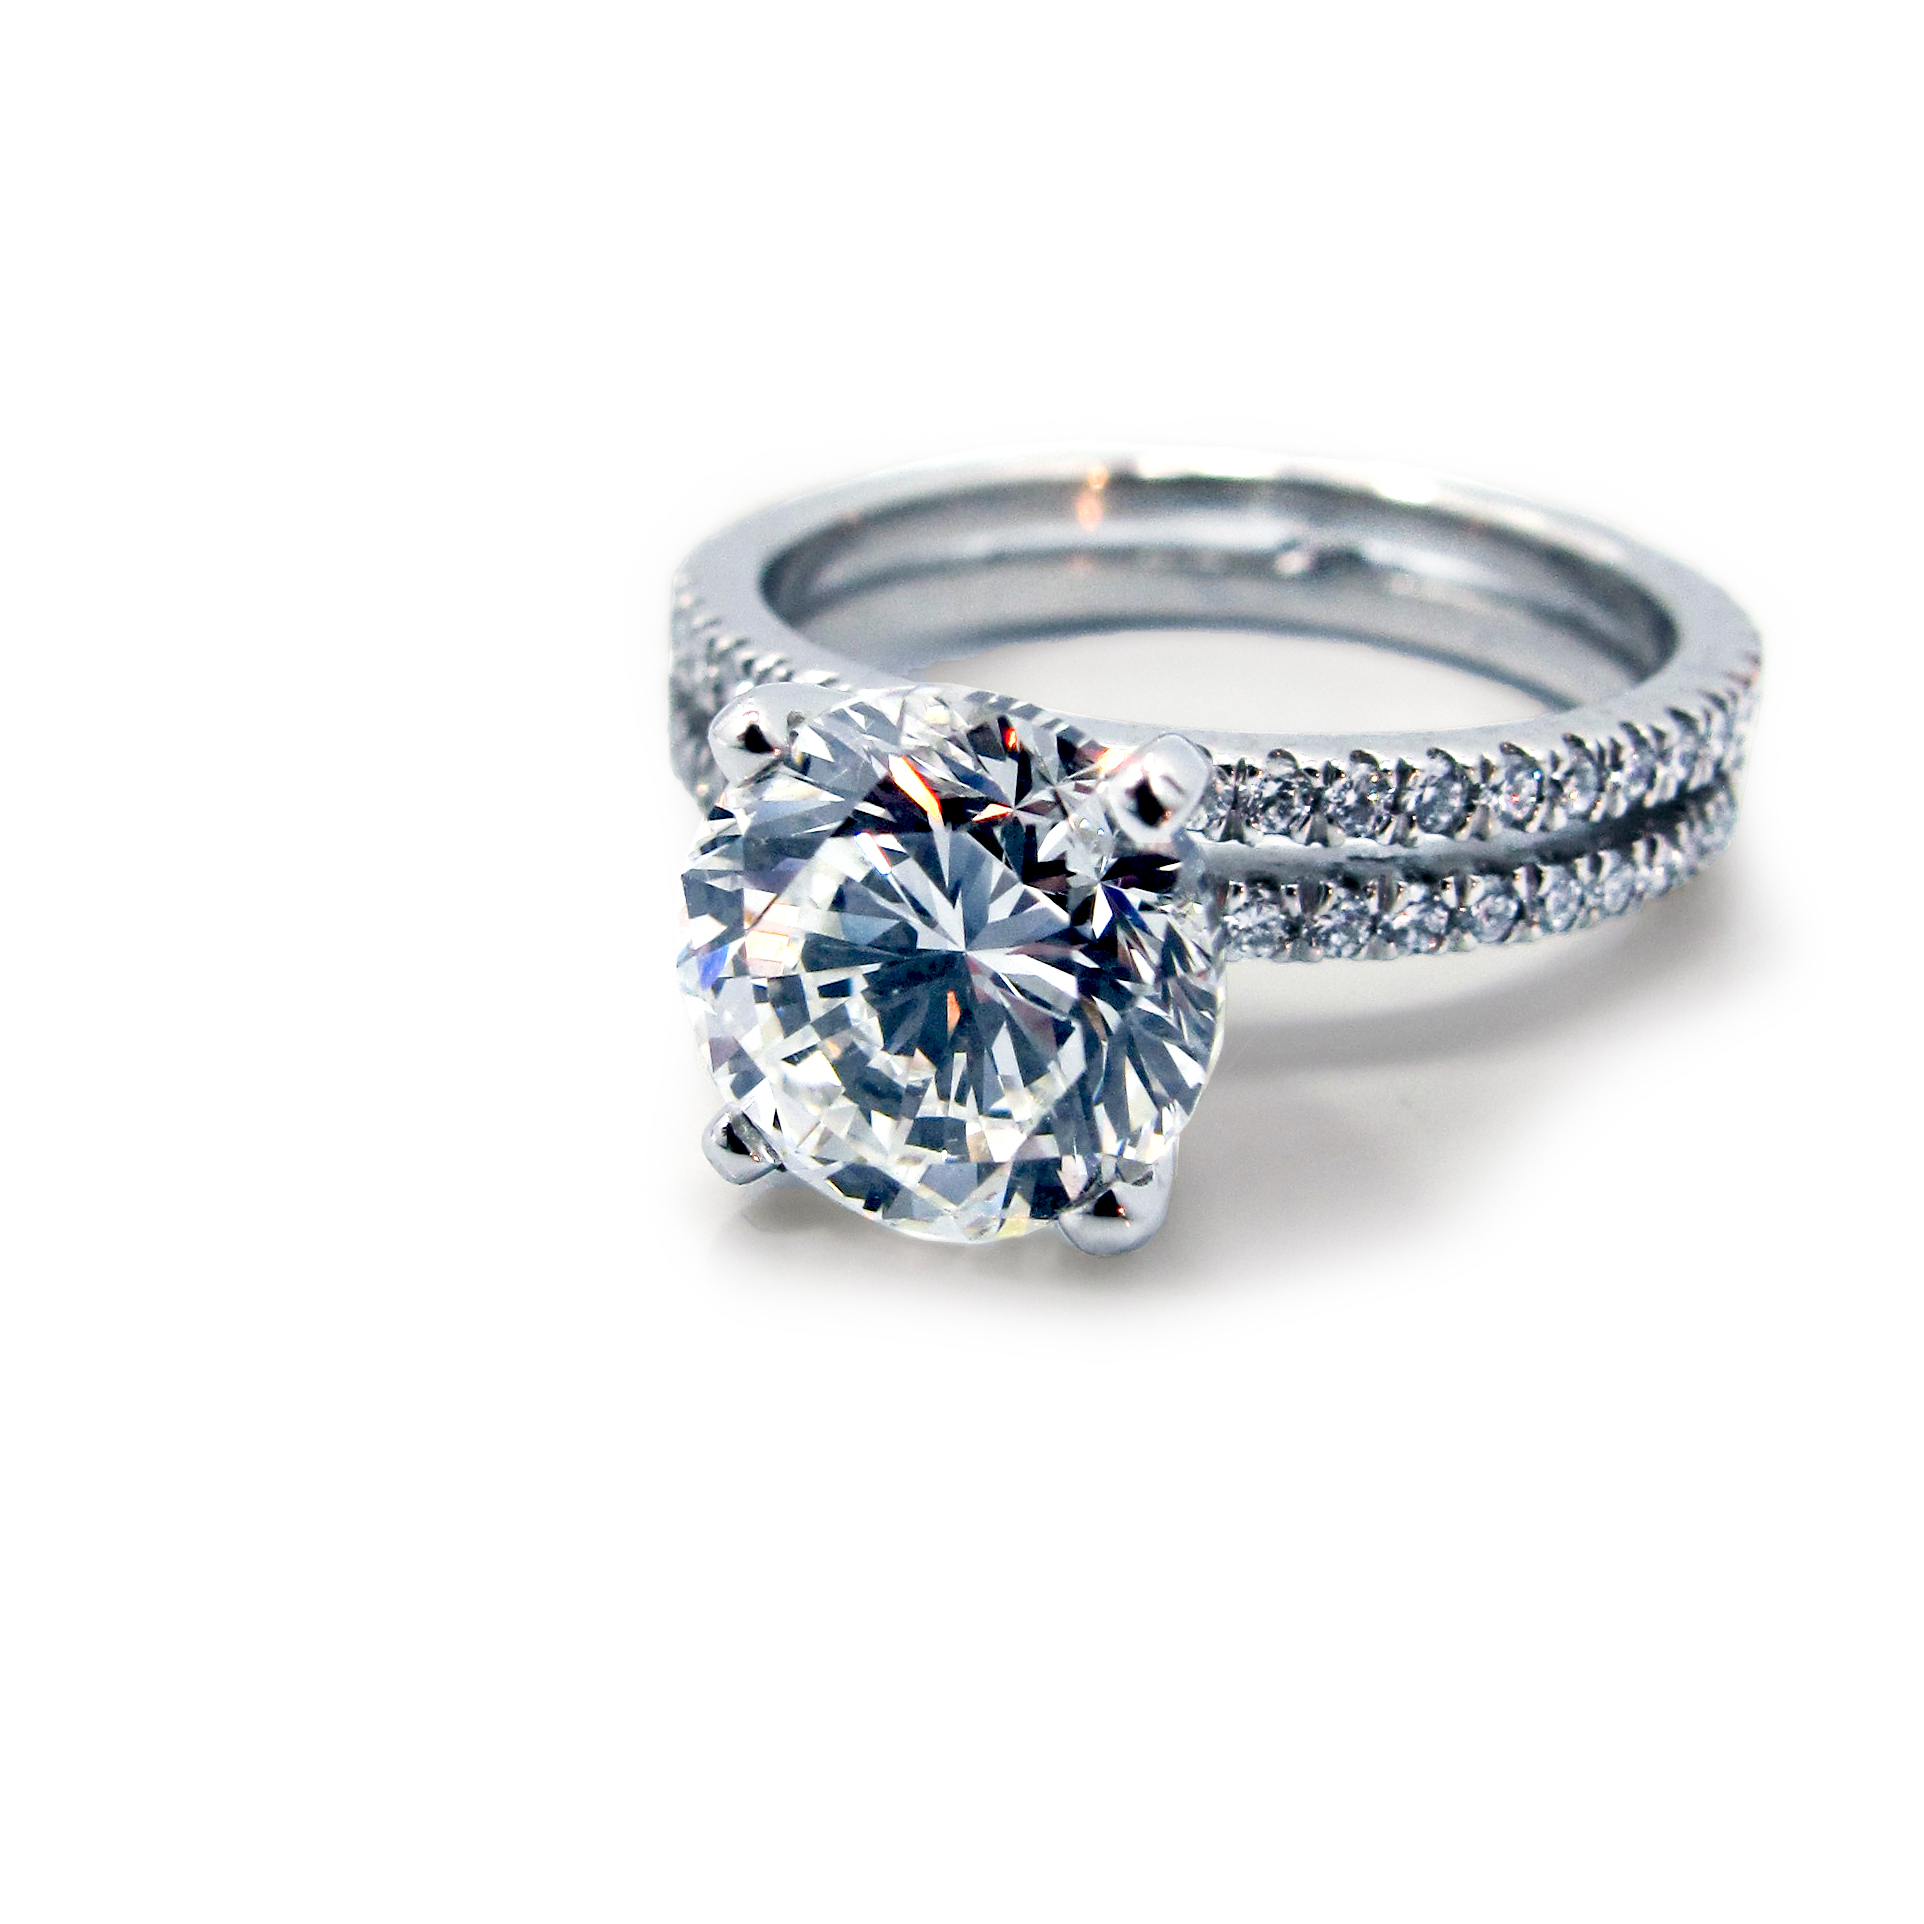 stone and ring band sparkling with engagement rings round a pin center double halo this ultra diamond features modern